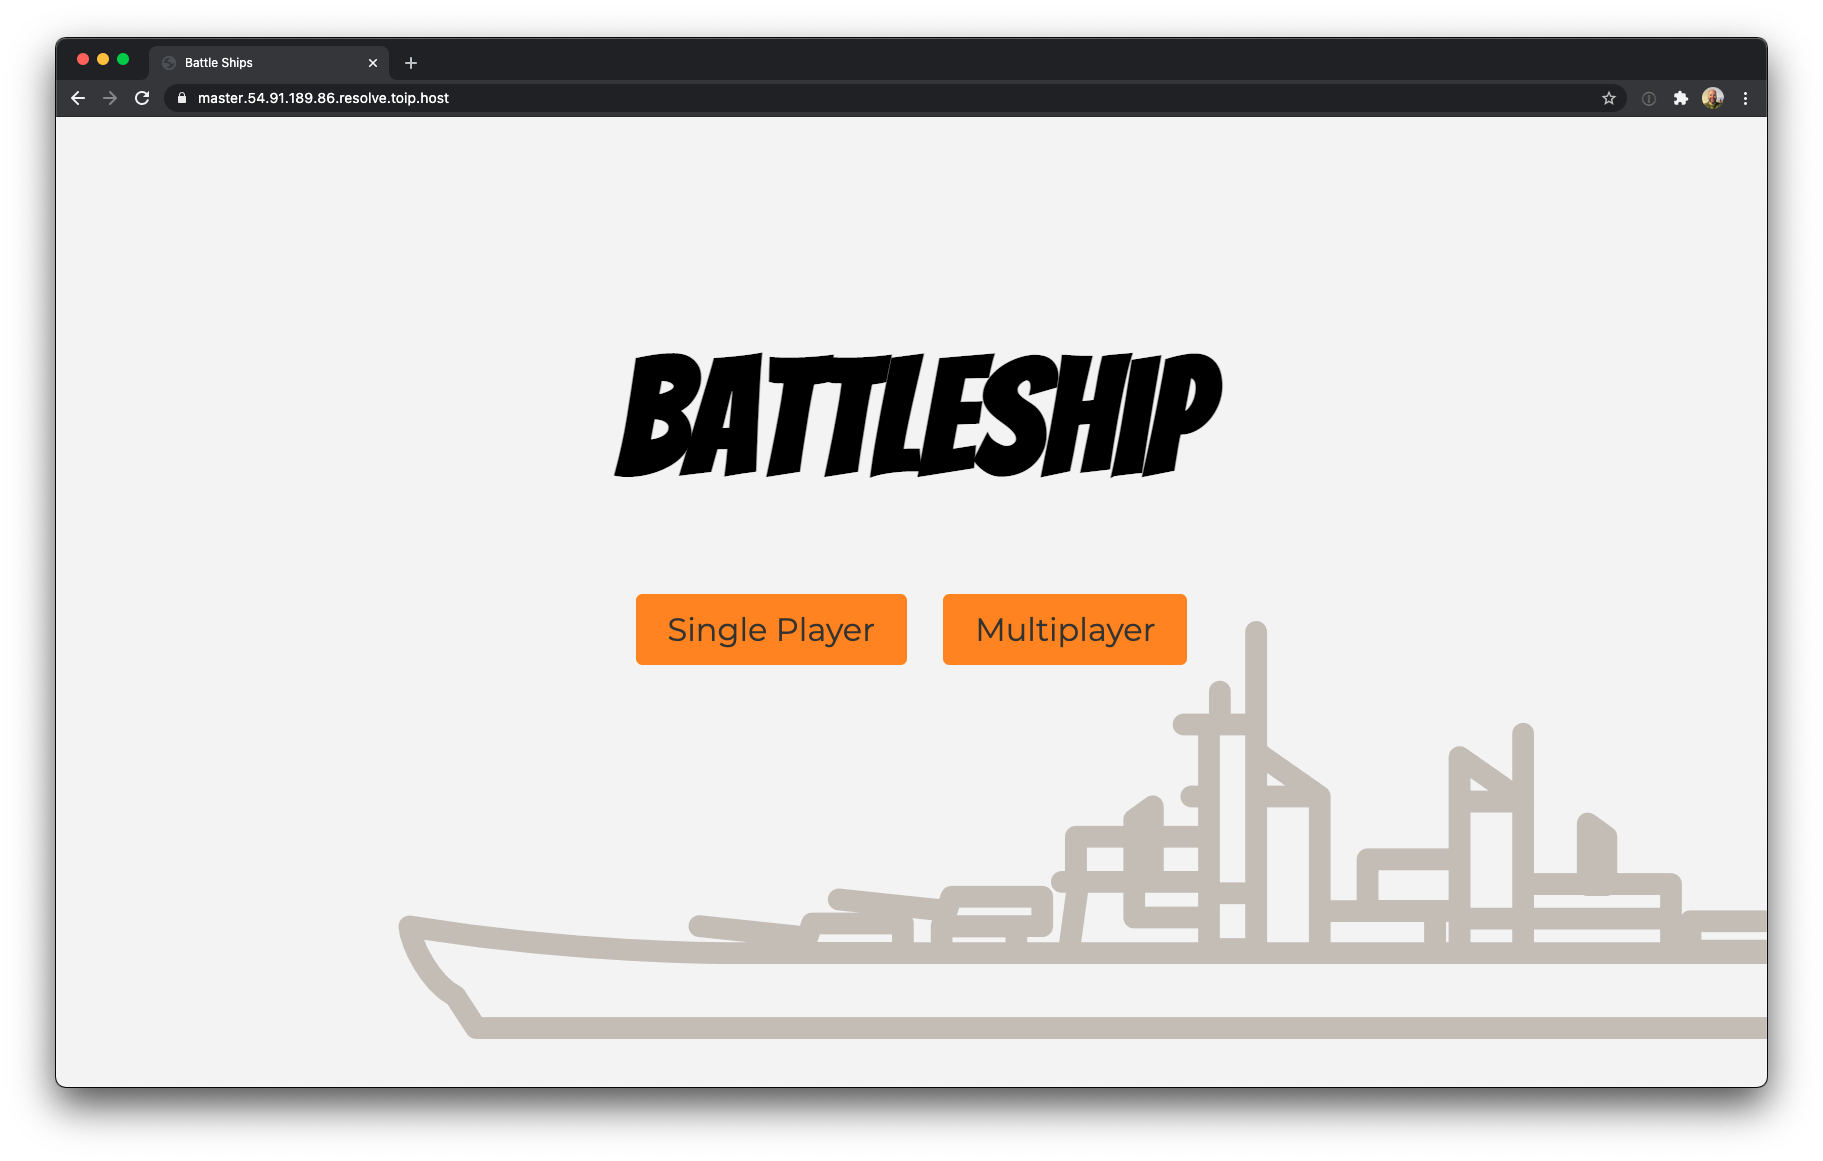 Battleship web app deployed in AWS with the 5 minute production app